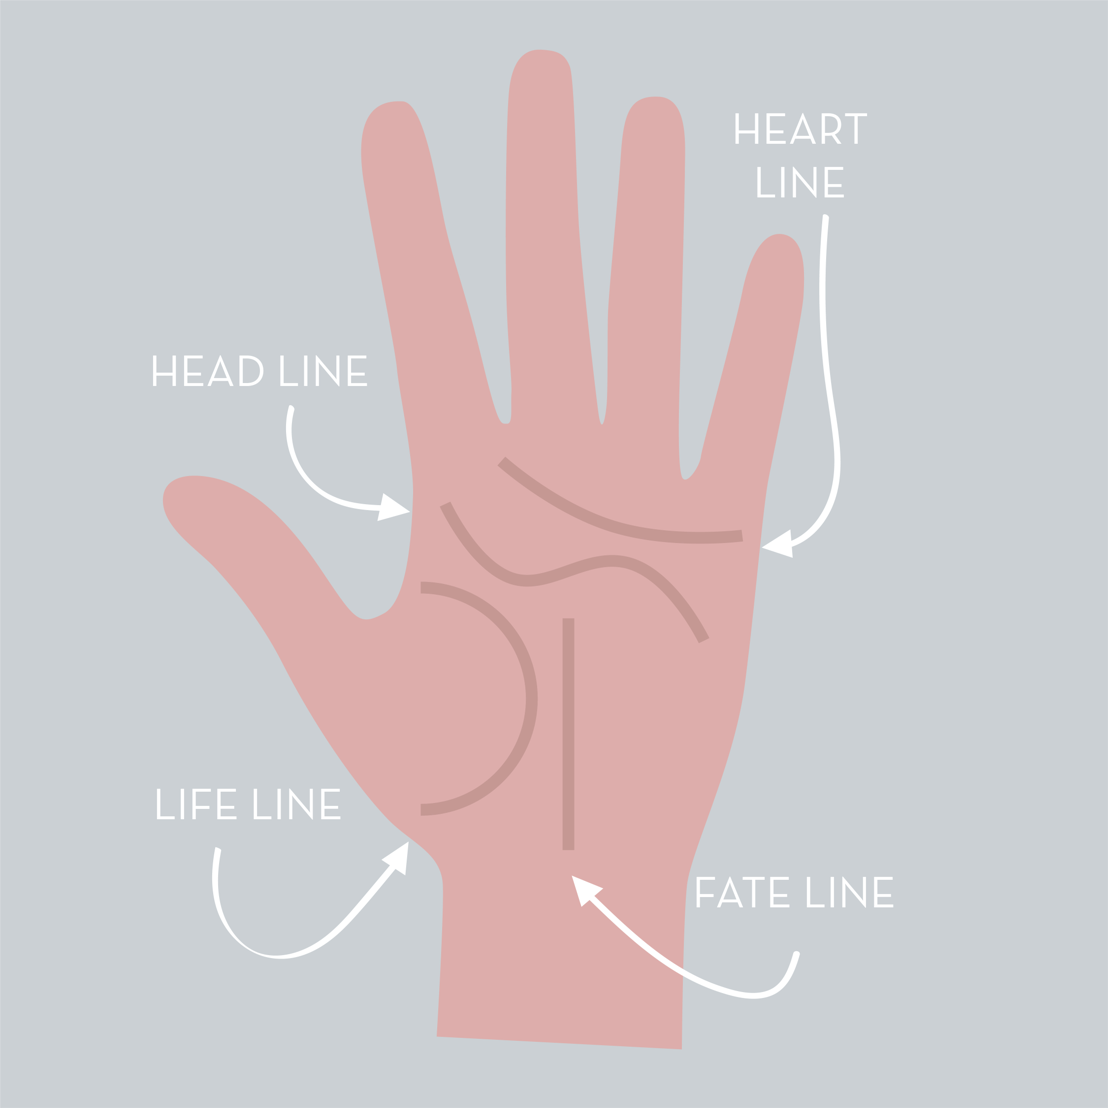 Illustration showing the four palm lines that make up the Palmistry Atrafloor design